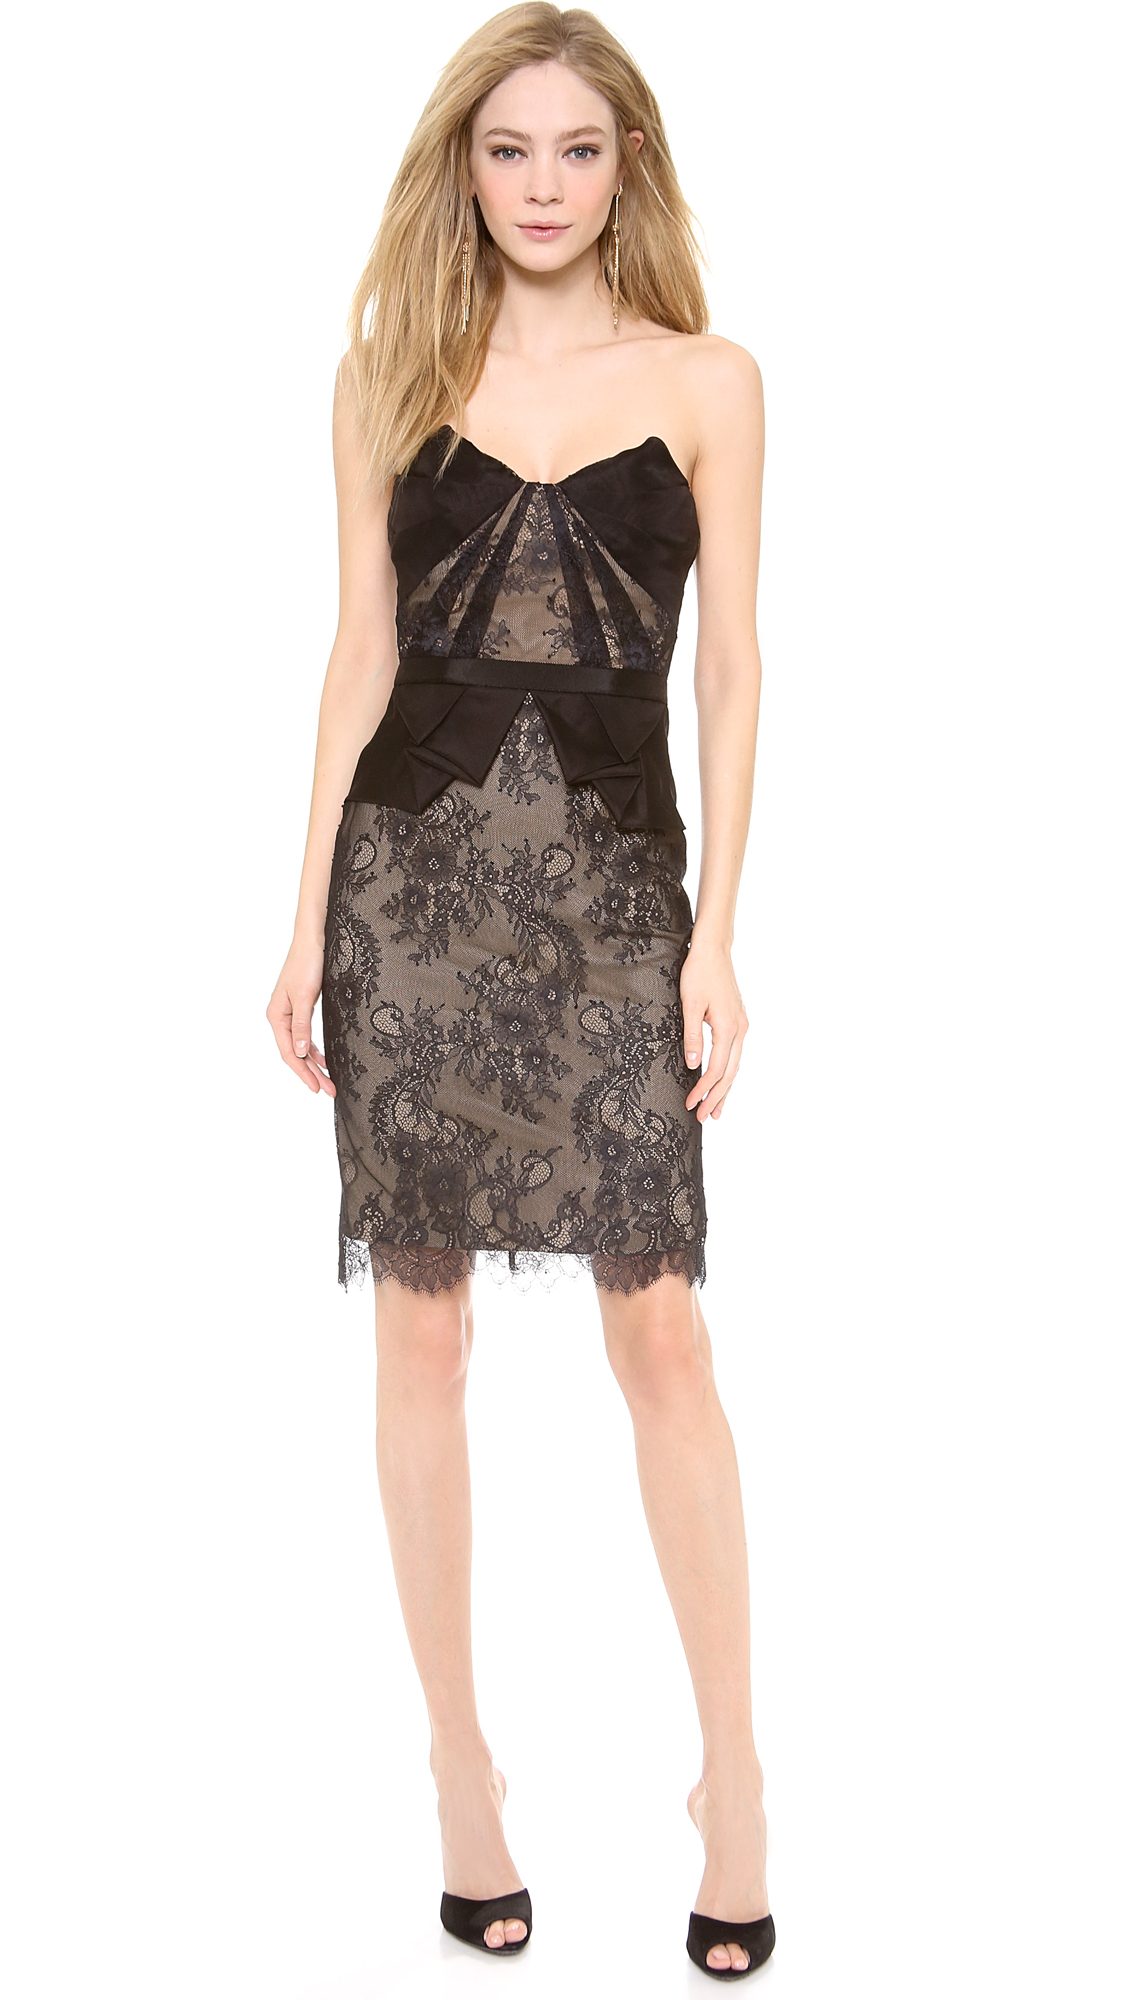 Notte By Marchesa Strapless Lace Cocktail Dress In Black